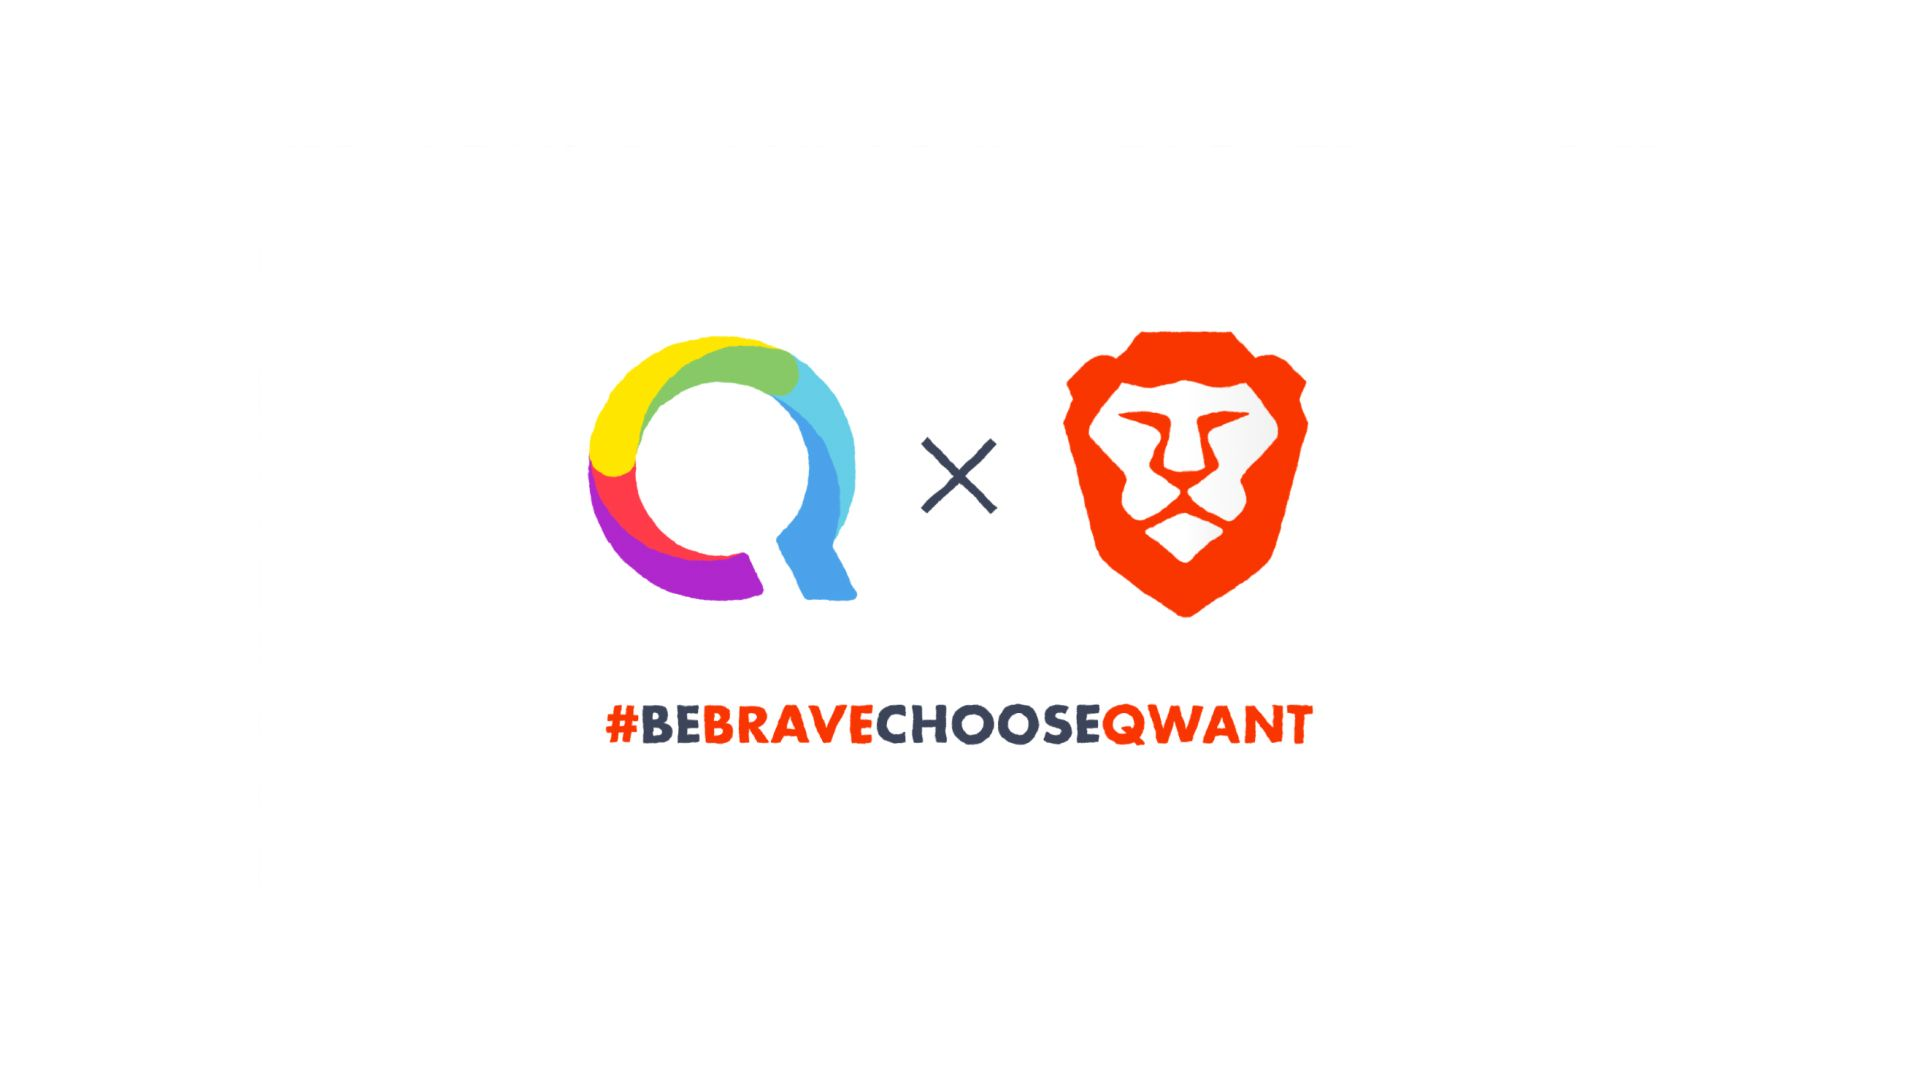 5 reasons to be Brave and choose Qwant